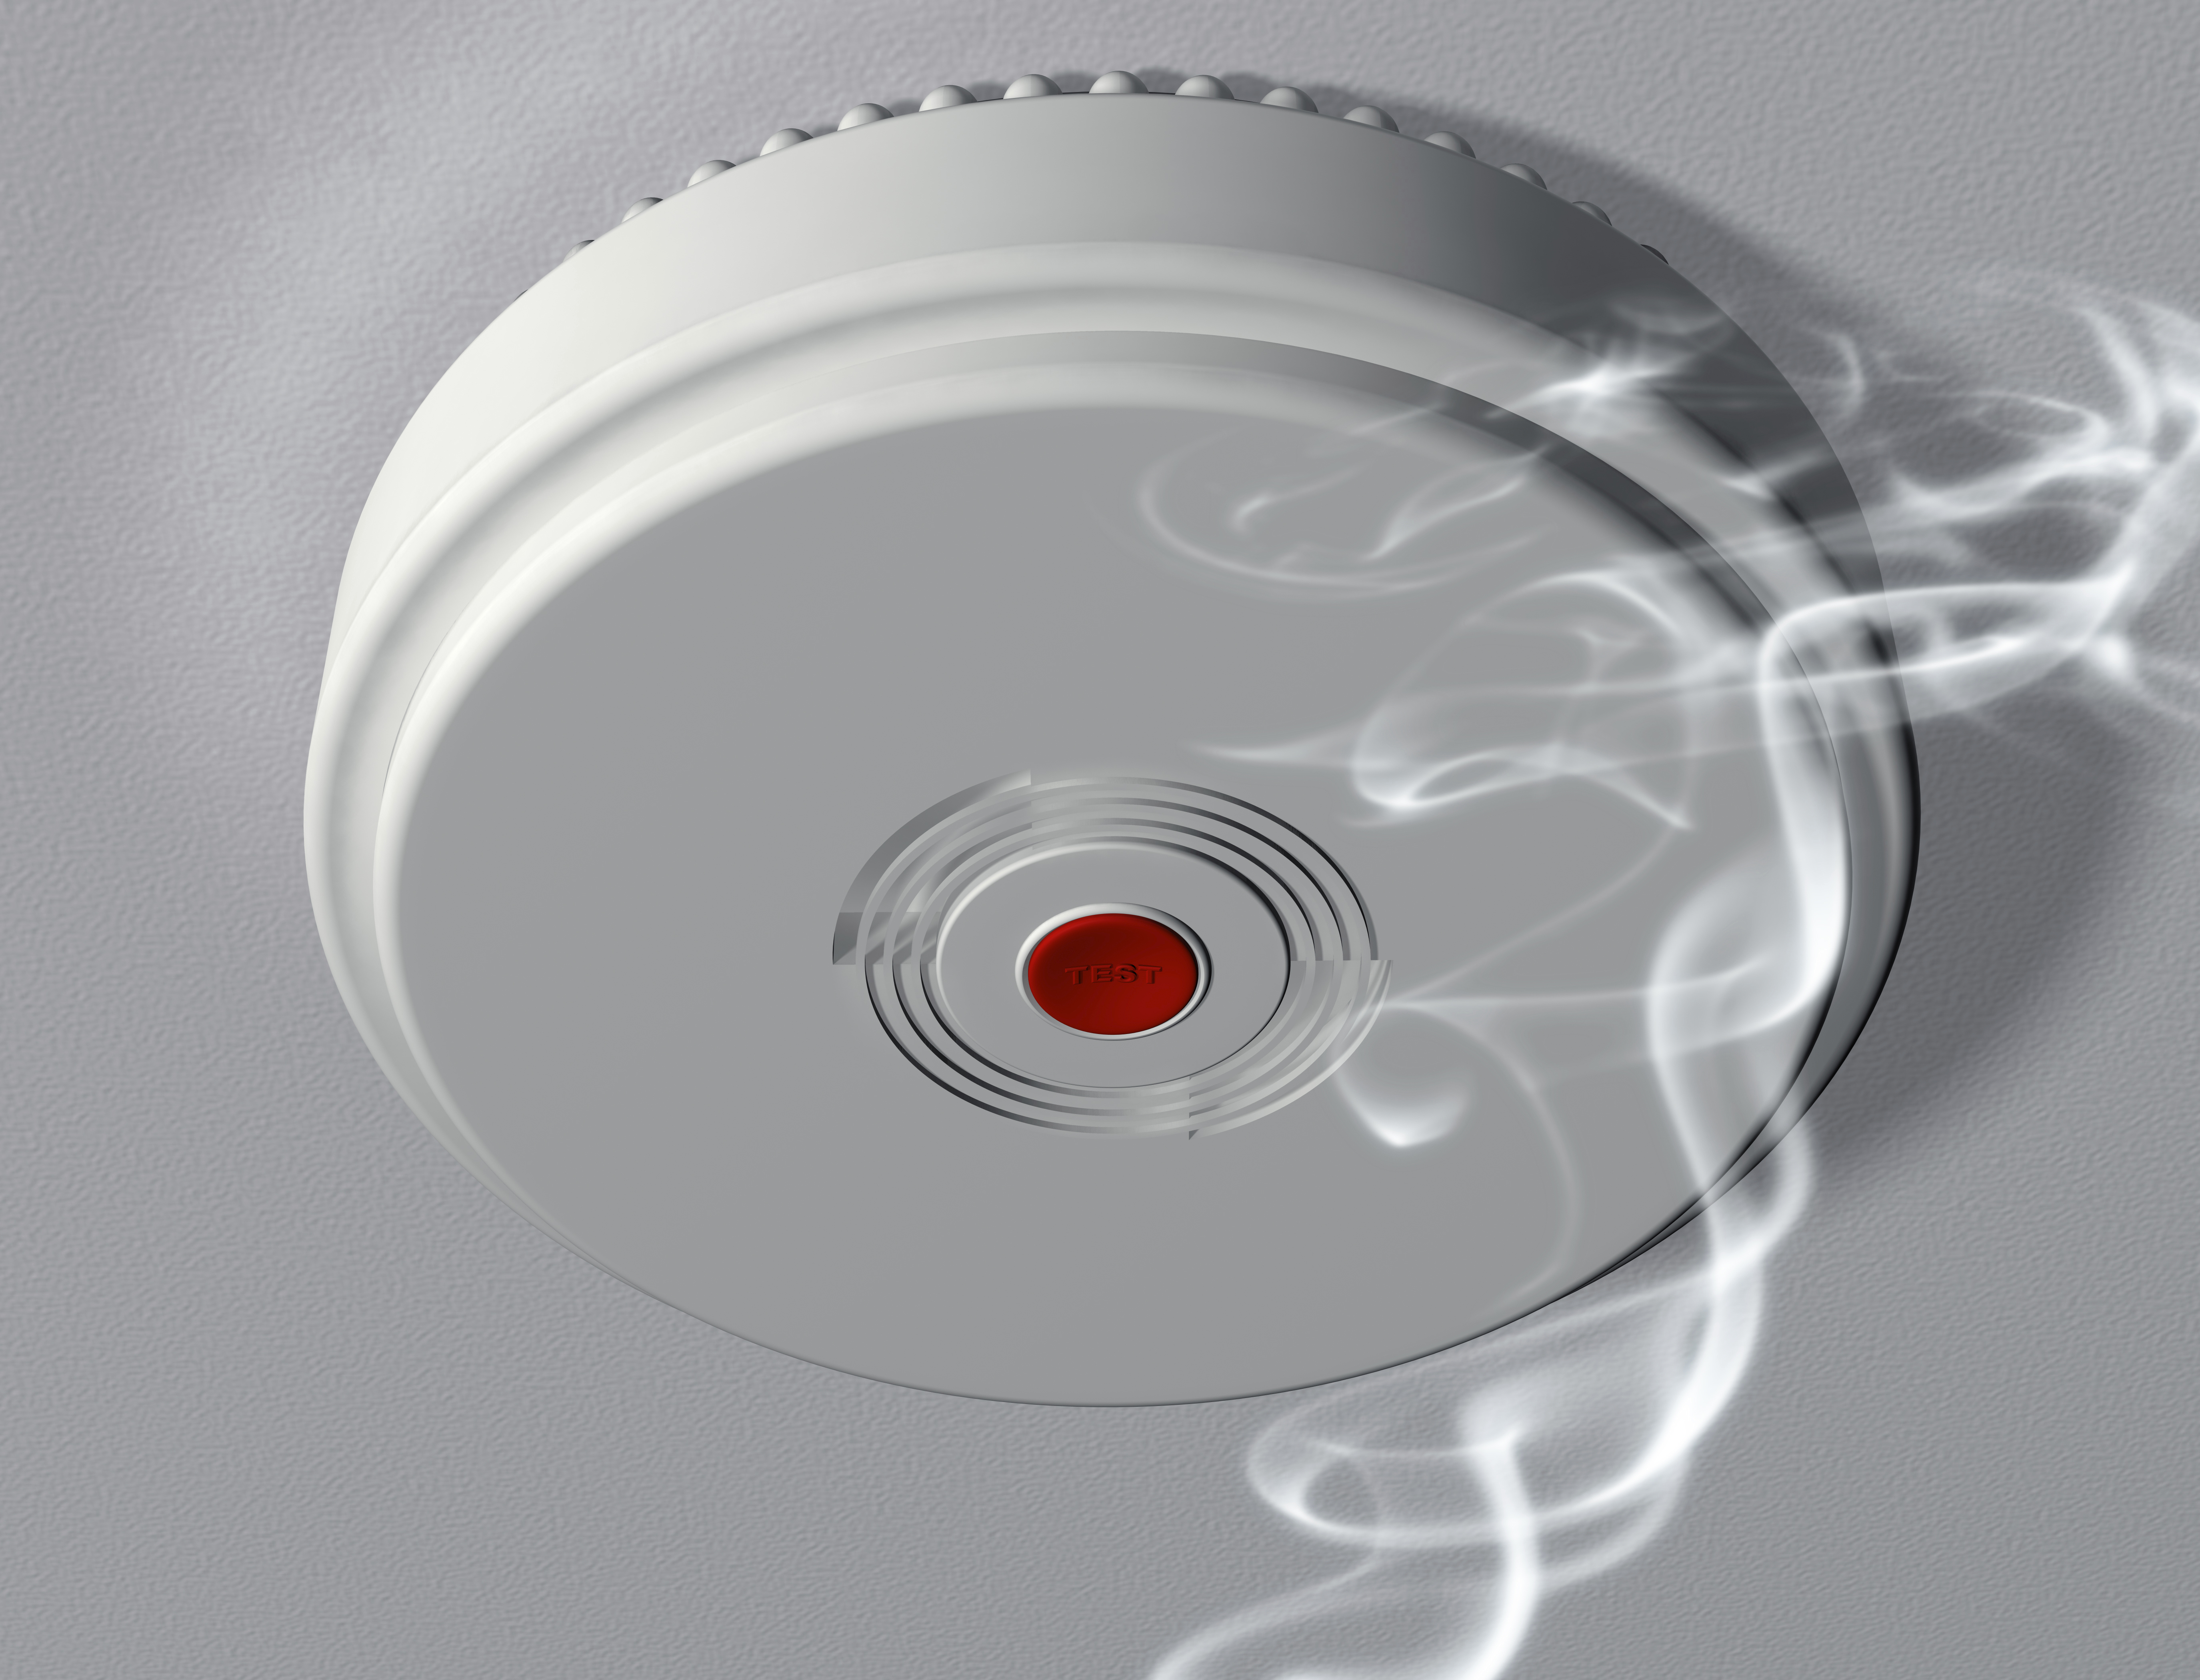 An illustration of a smoke alarm warning of a fire